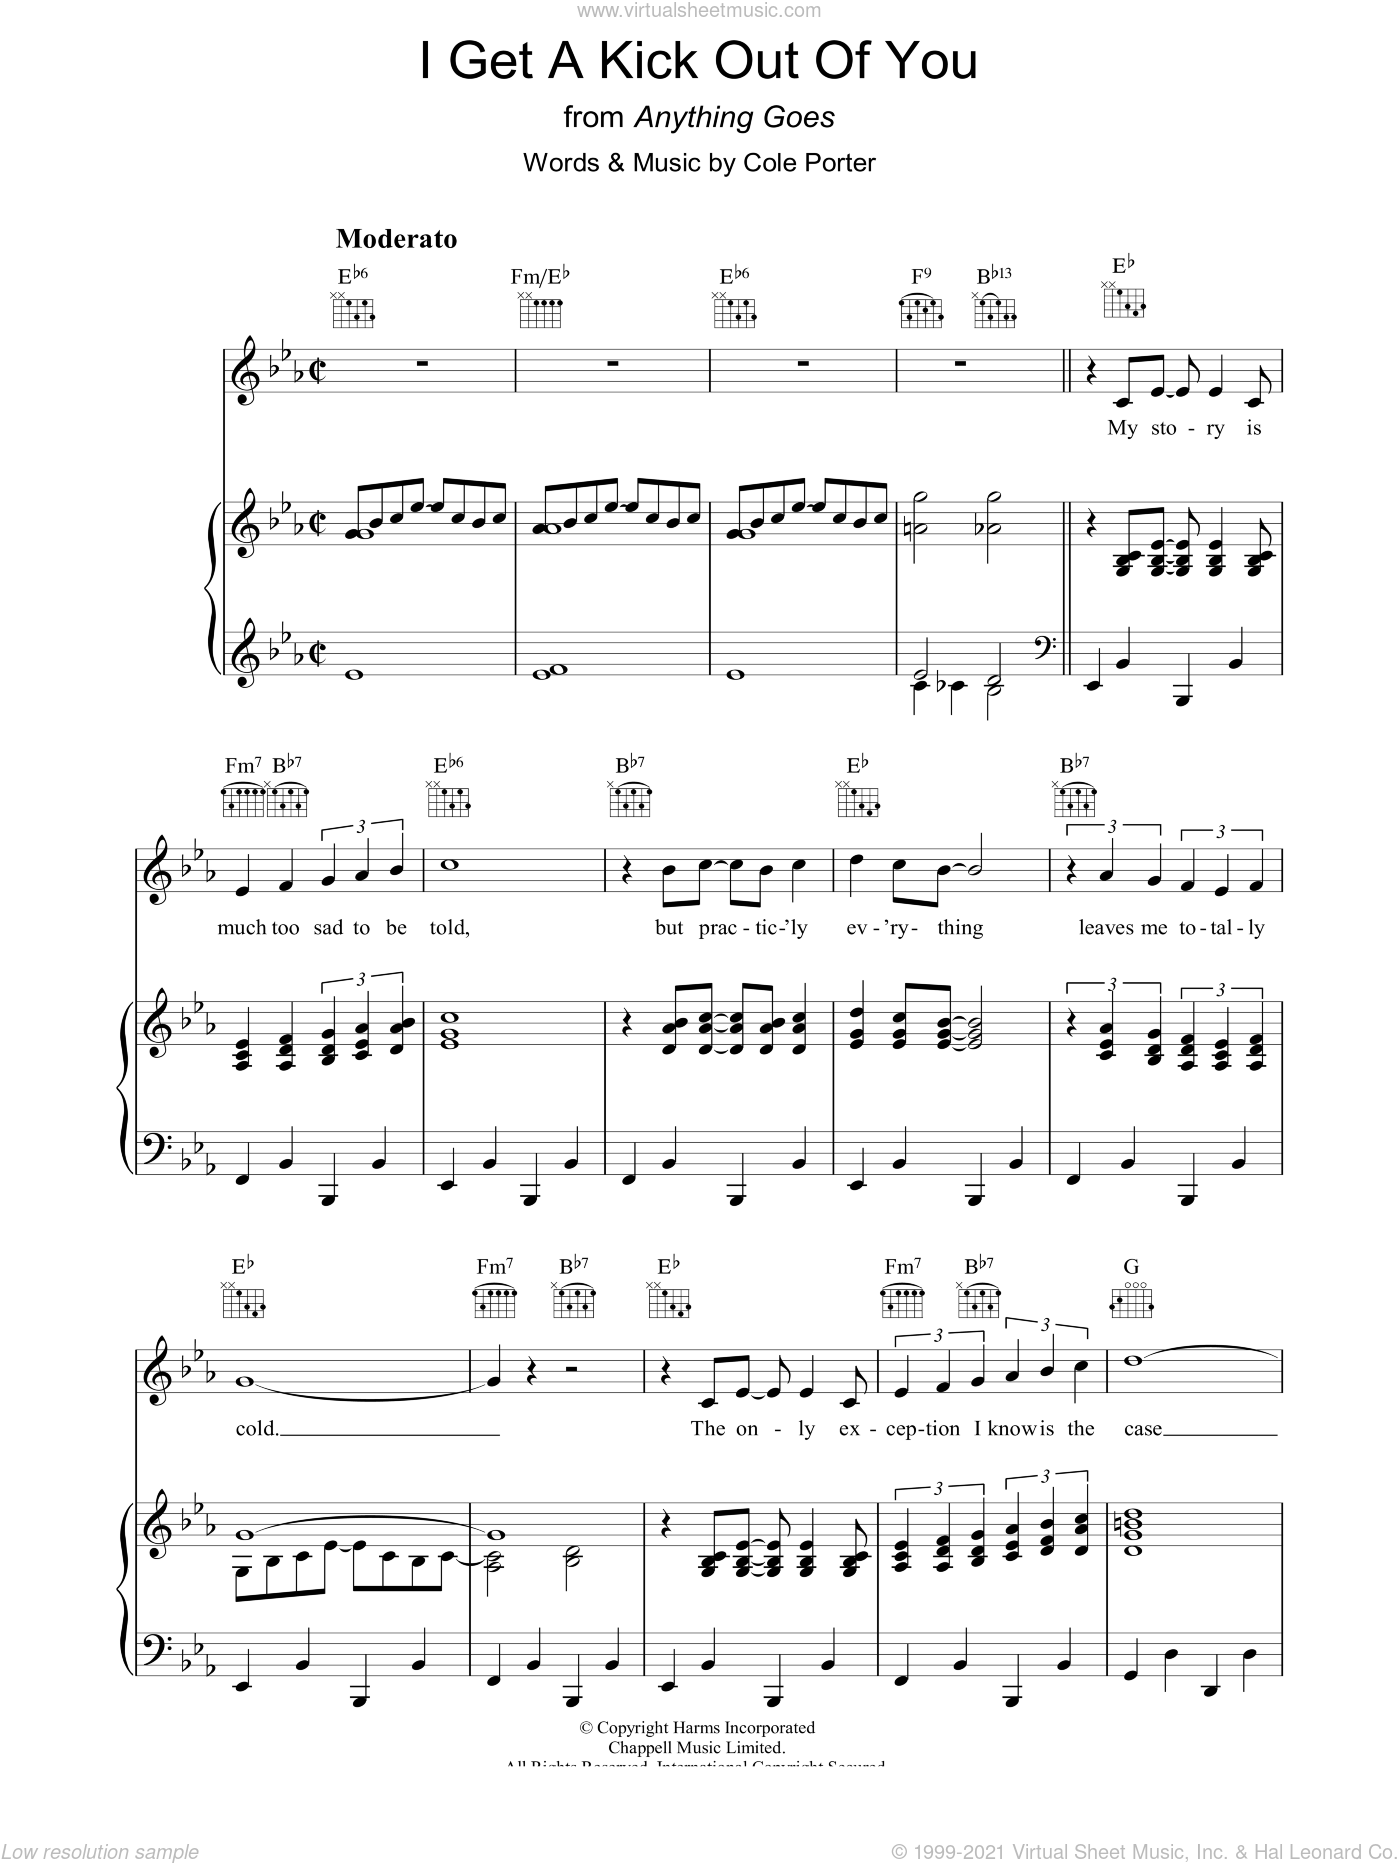 I Get A Kick Out Of You sheet music for voice, piano or guitar by Cole Porter, intermediate